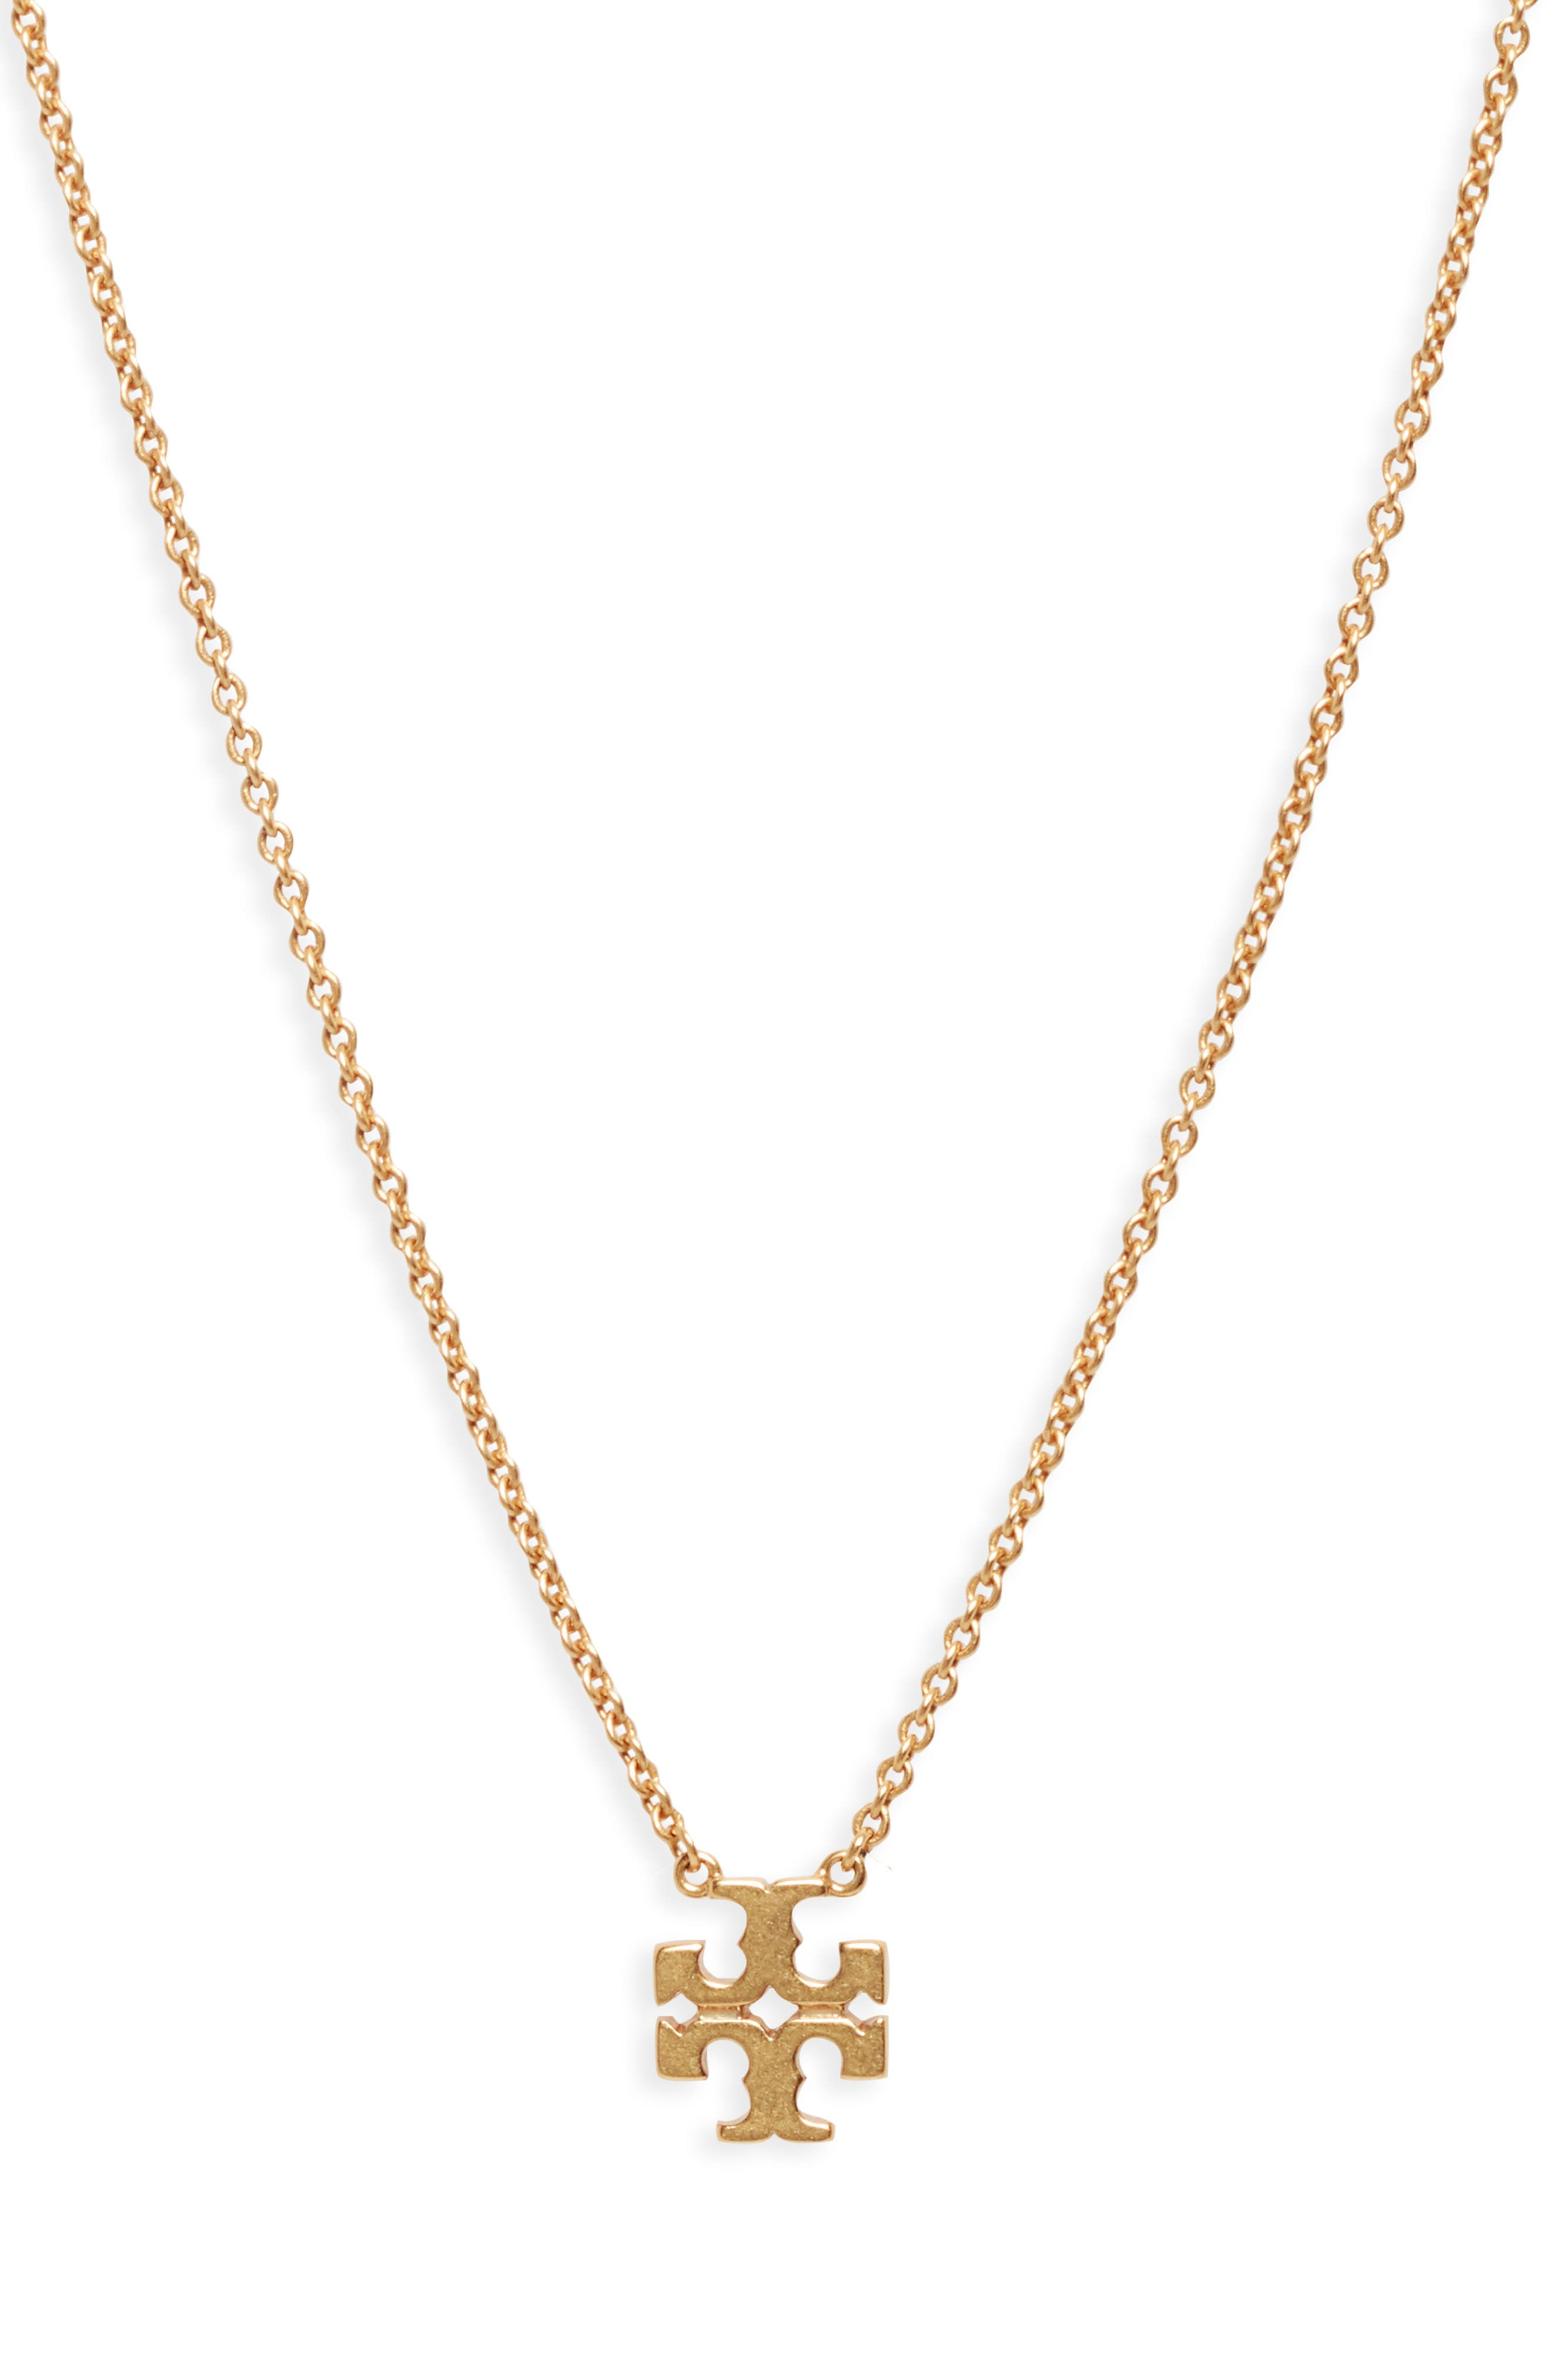 TORY BURCH Logo Charm Necklace, Main, color, ROLLED BRASS 59